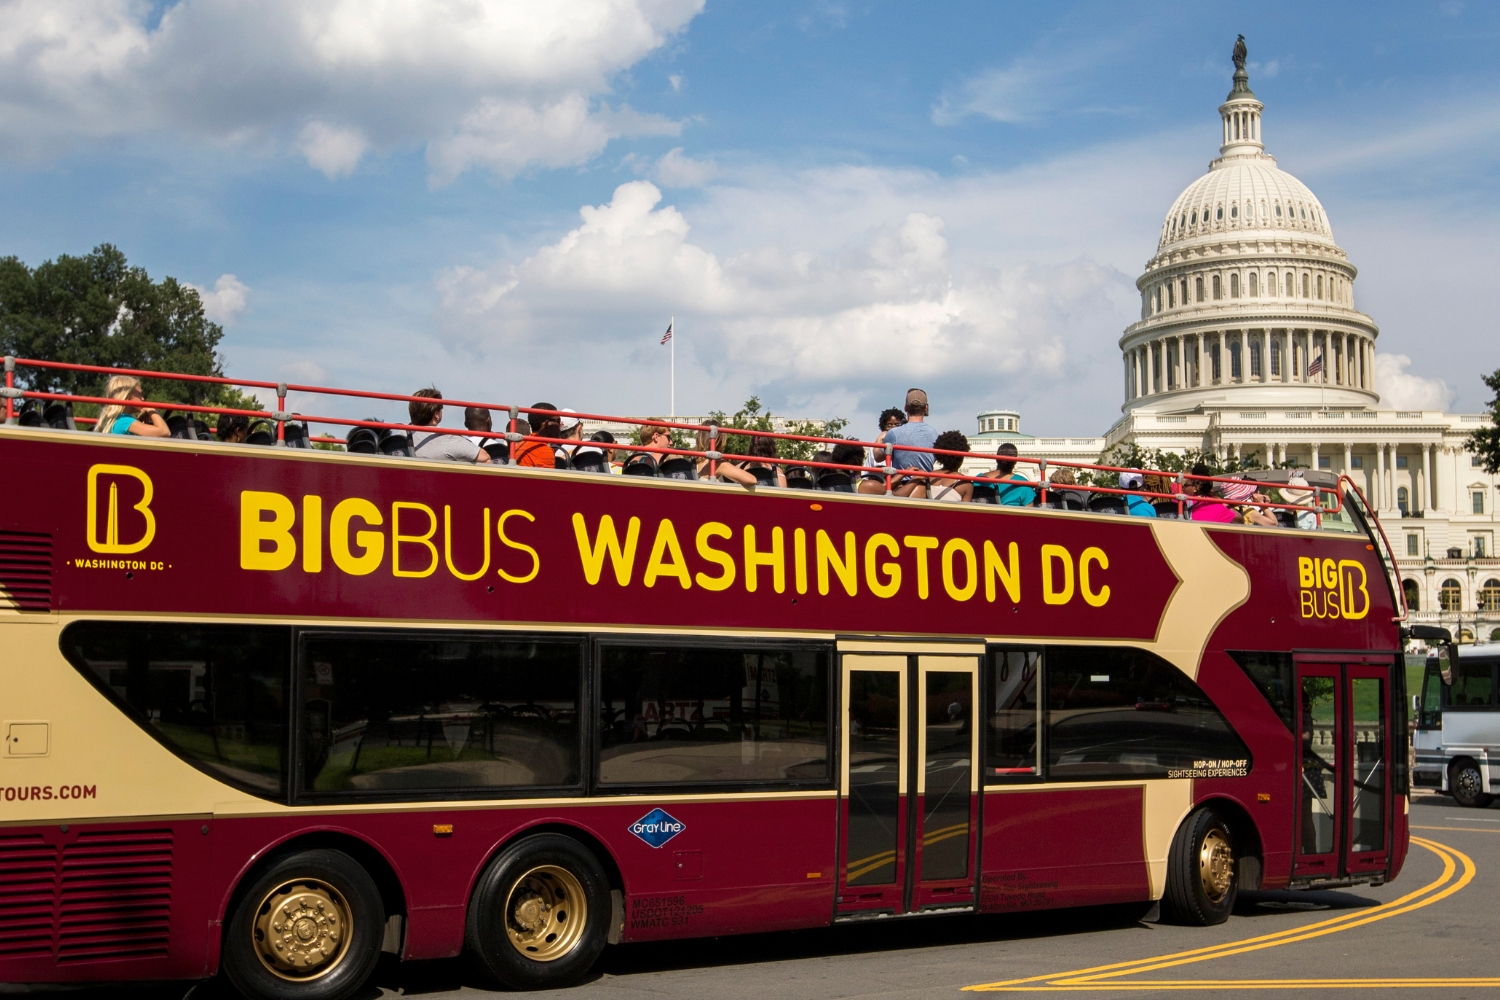 Big Bus Washington DC | The Sightseeing Pass